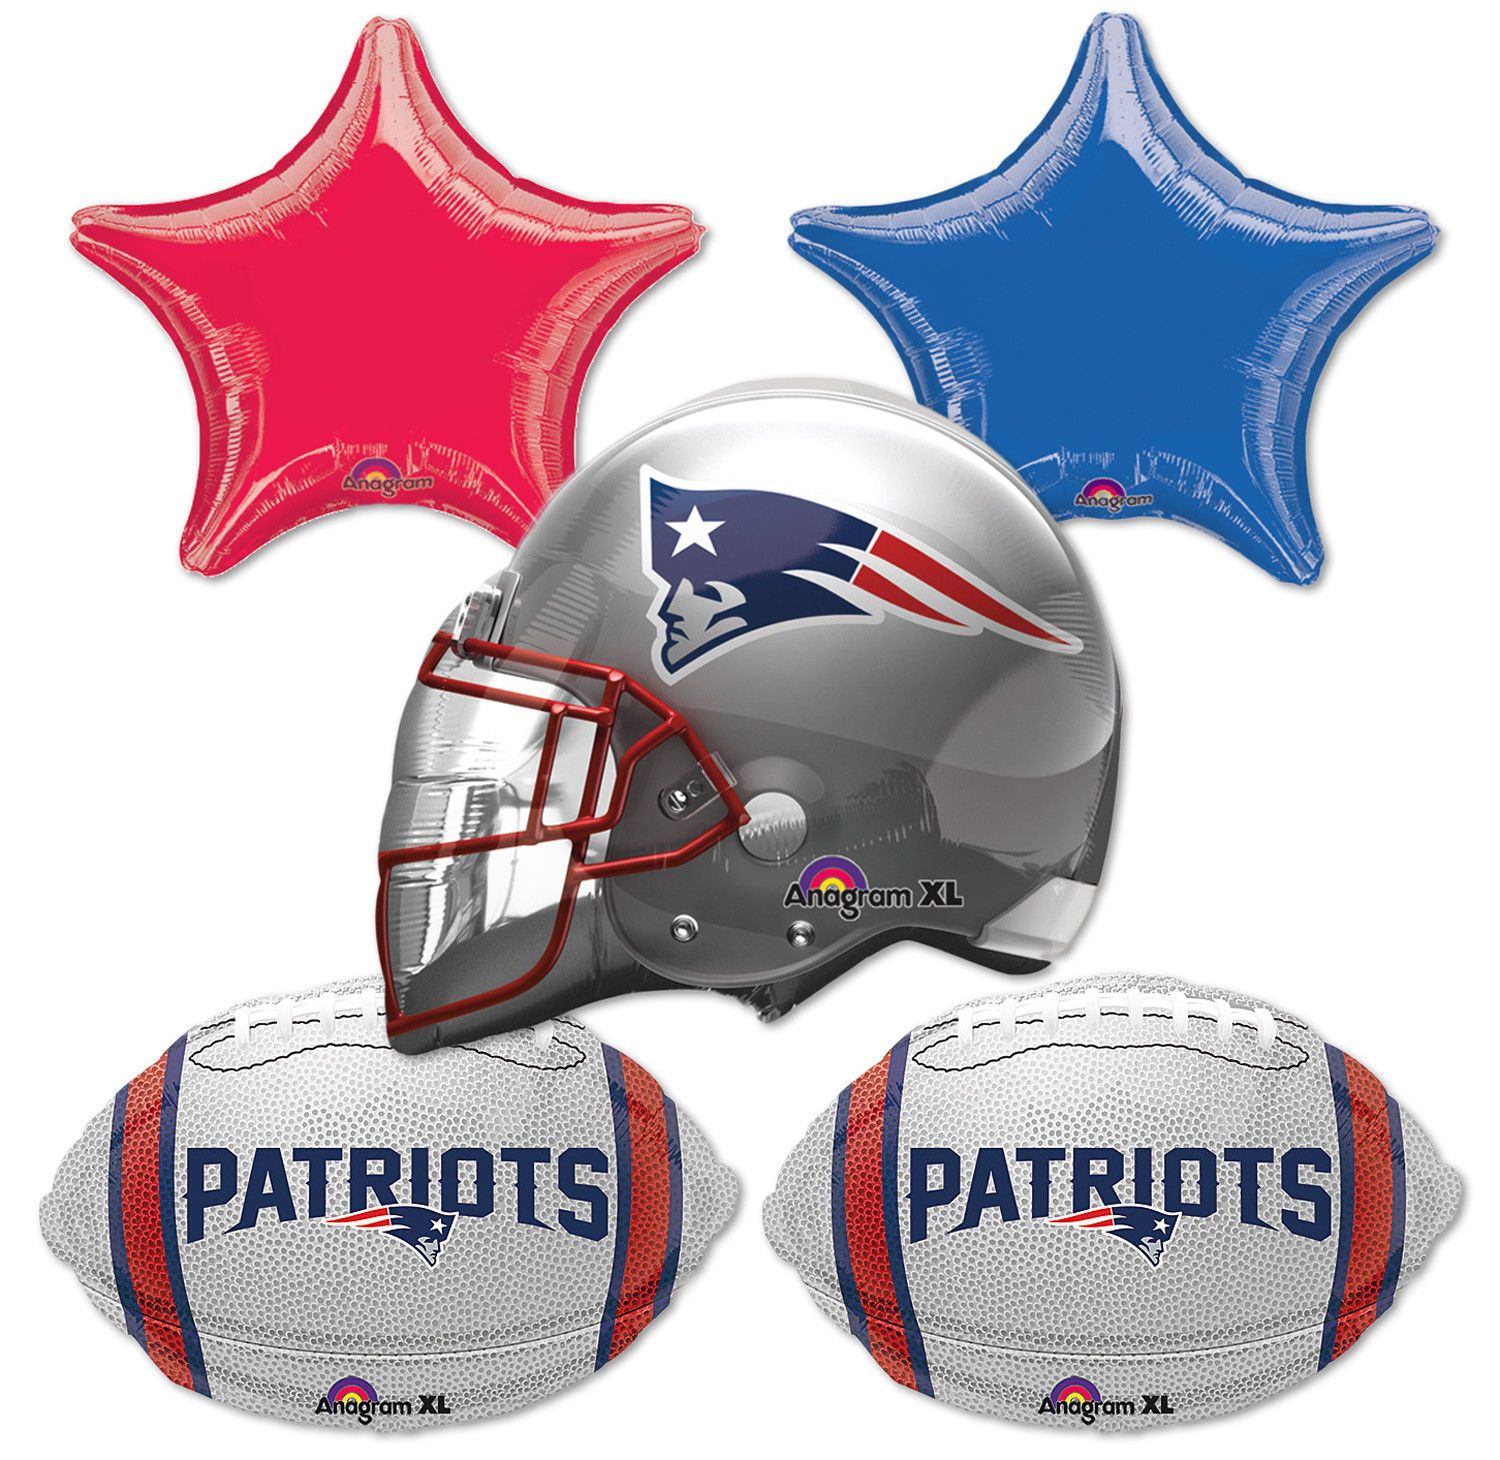 Anagram England Patriots Football Bouquet 5pc Balloon Pack Navy Silver Red Patriots Balloon Gift Nfl Patriots